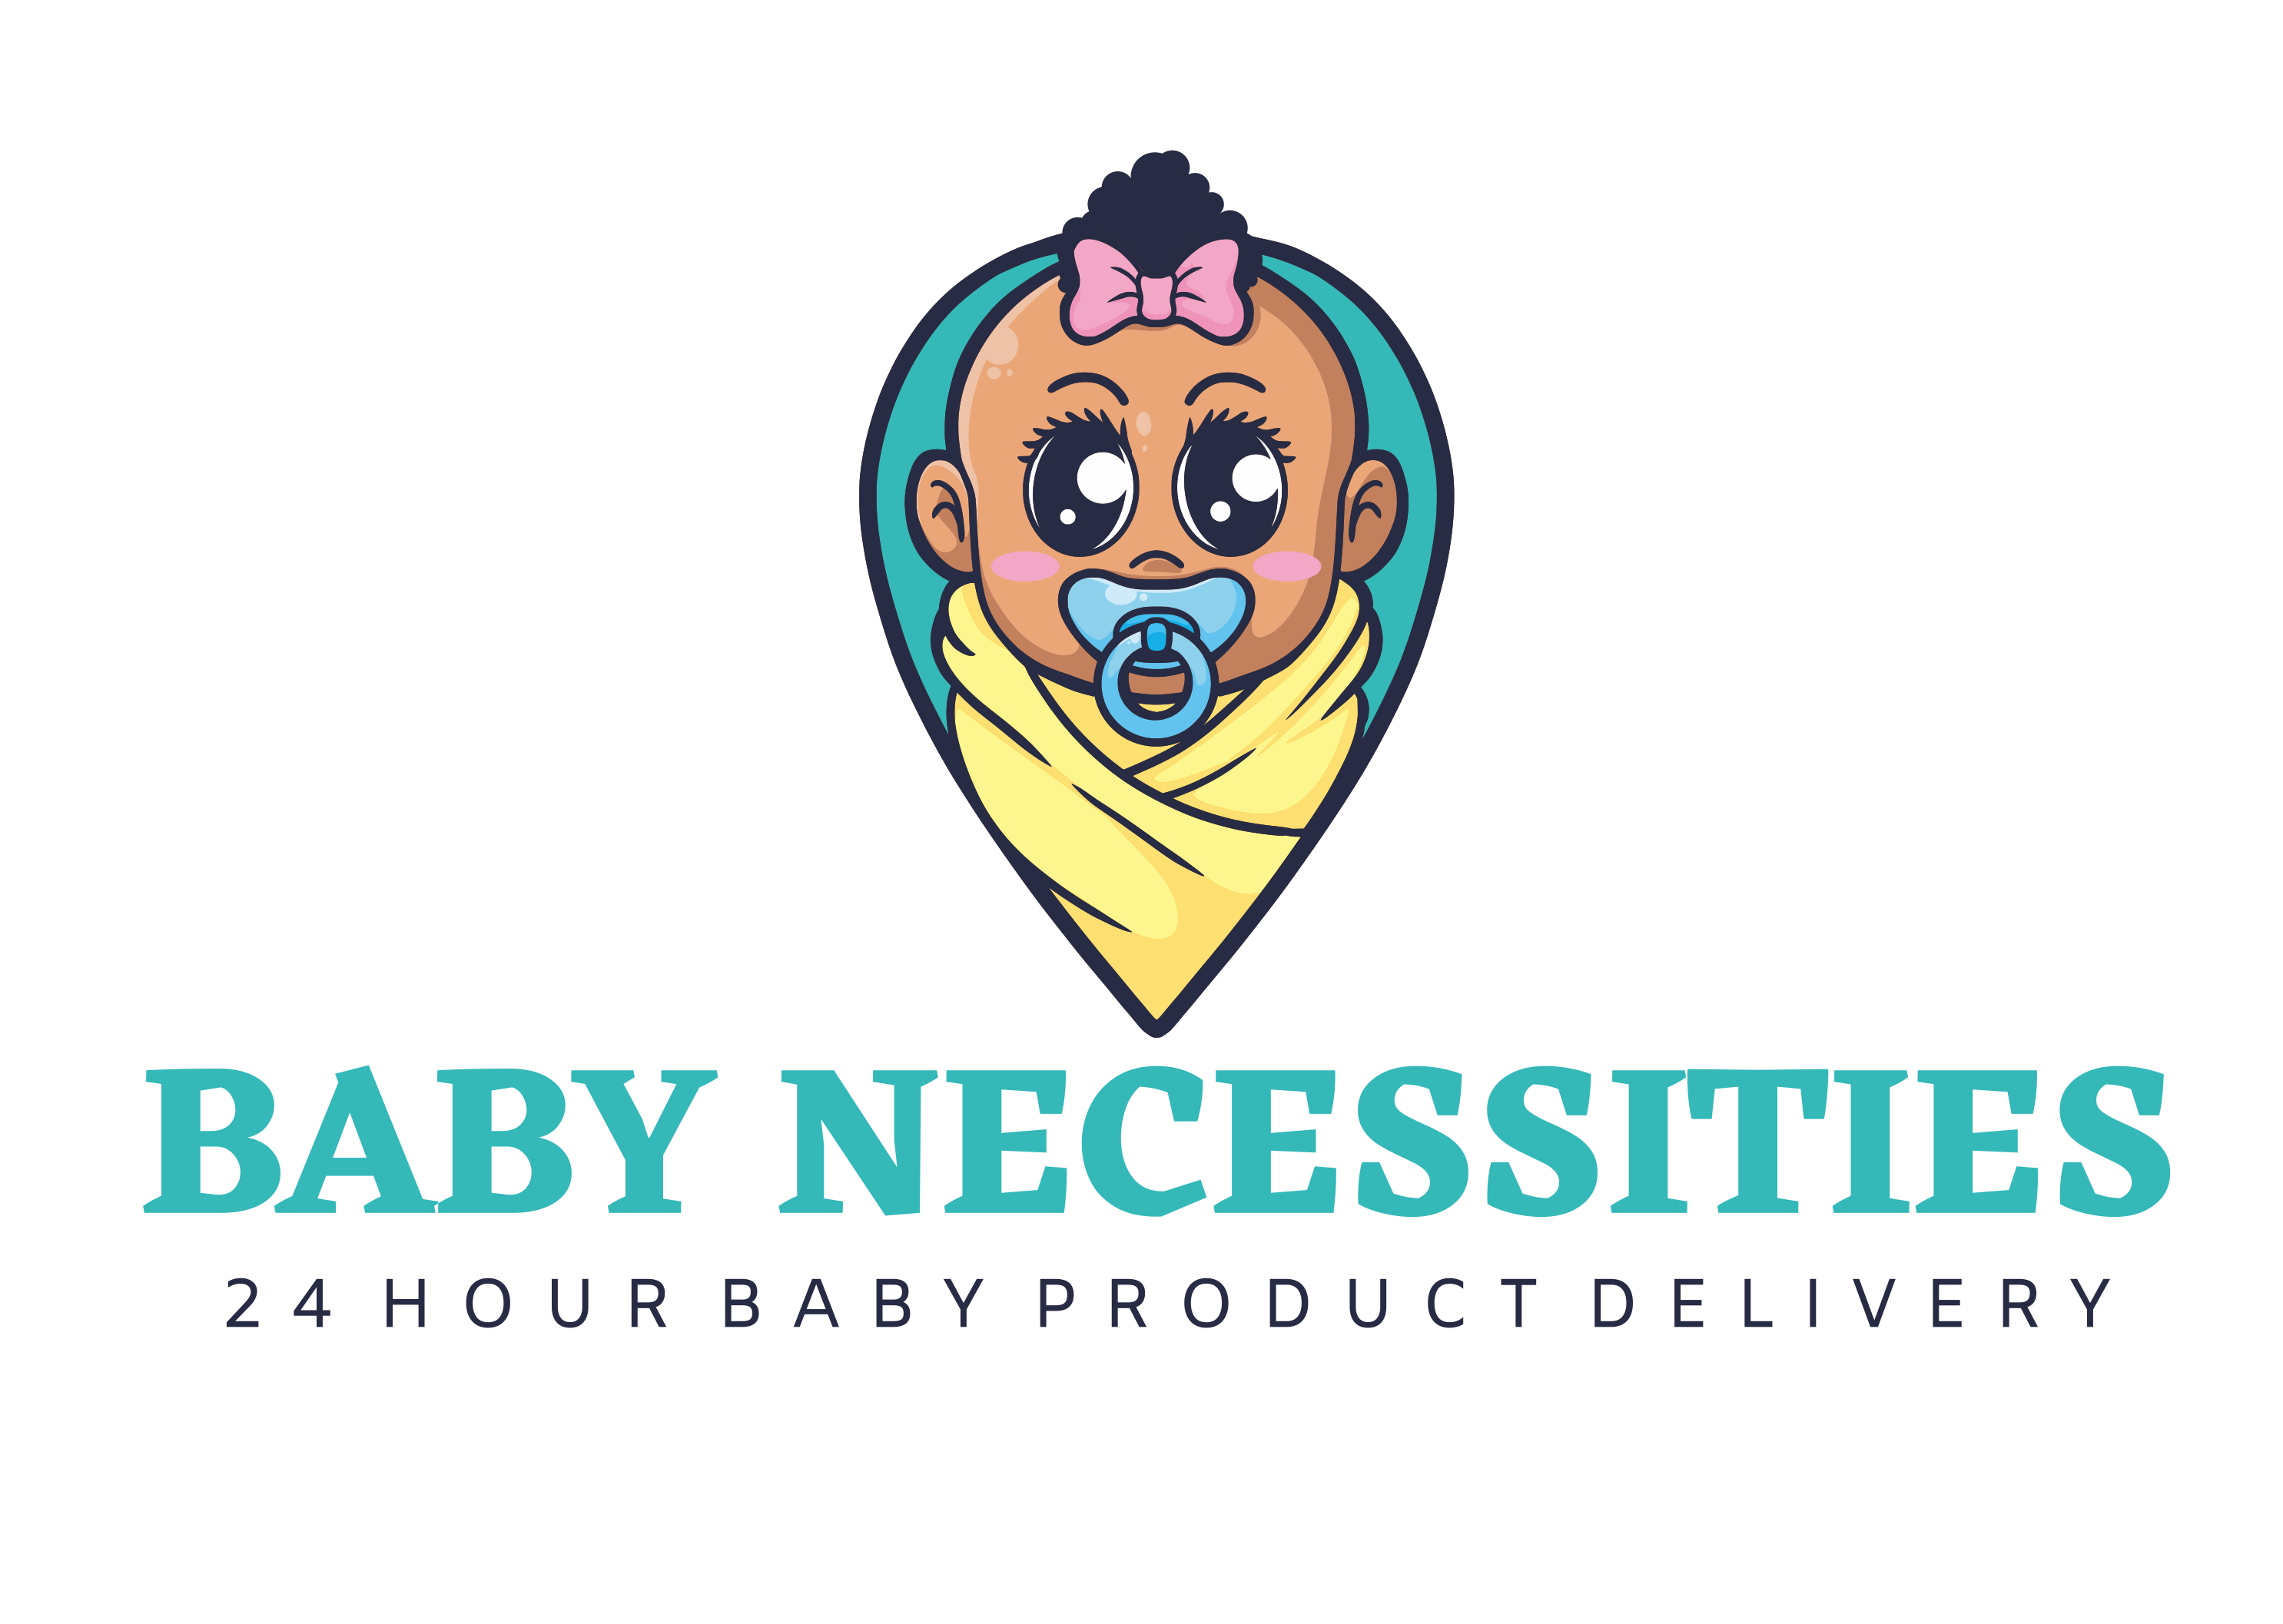 Navigate to the Baby Necessities homepage